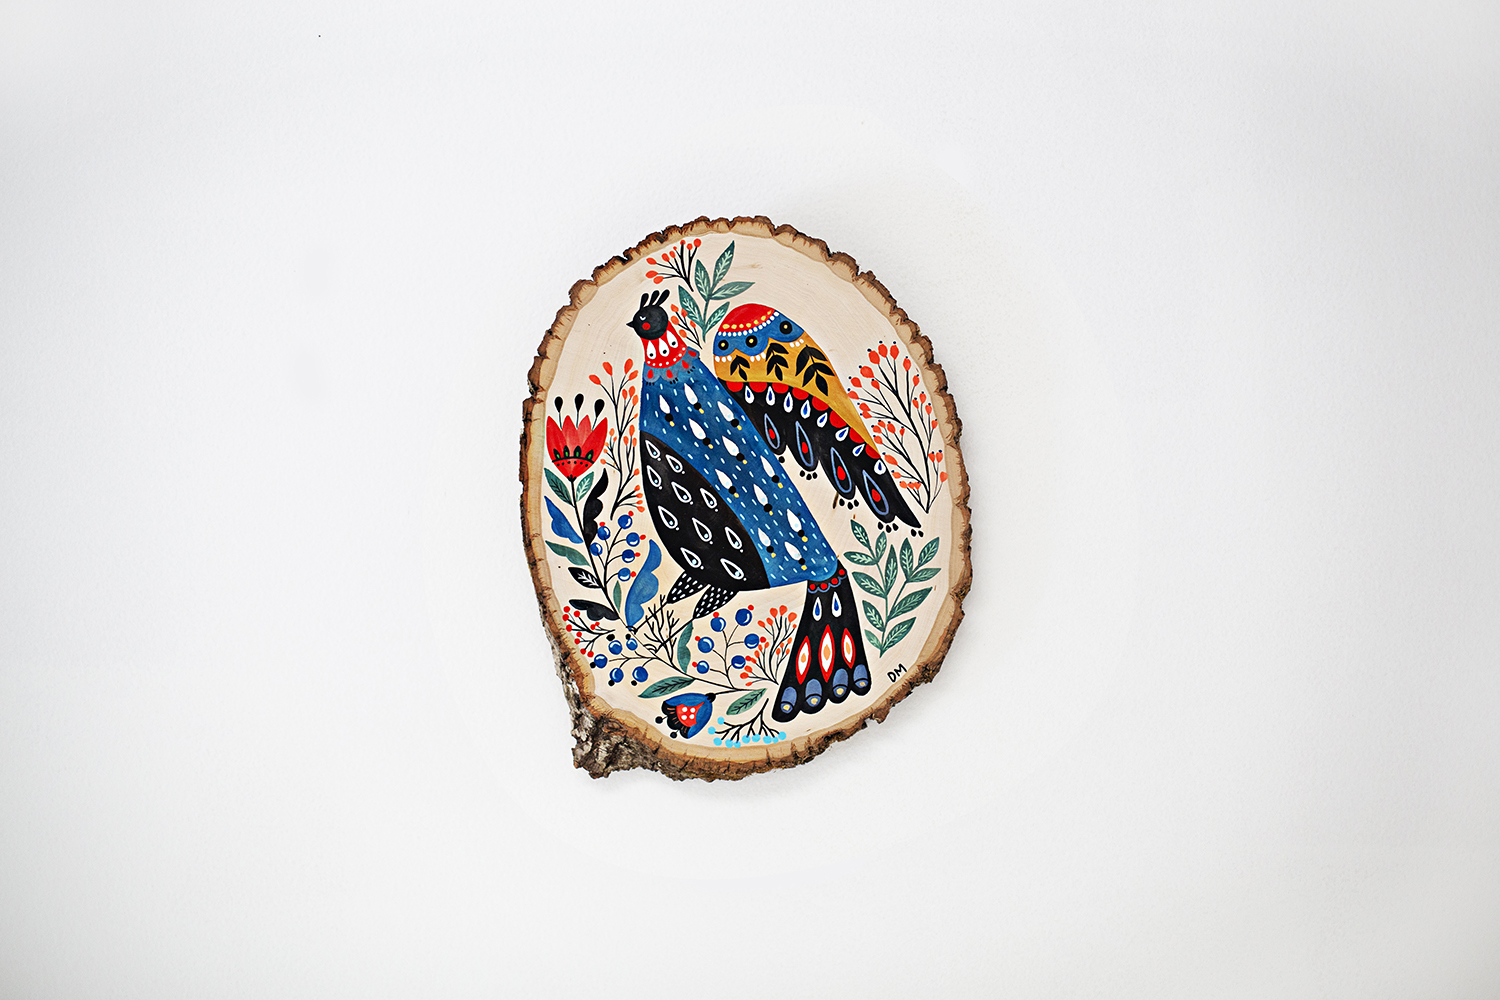 Dinara Mirtalipova Bird on Wood No2 B 72.jpg